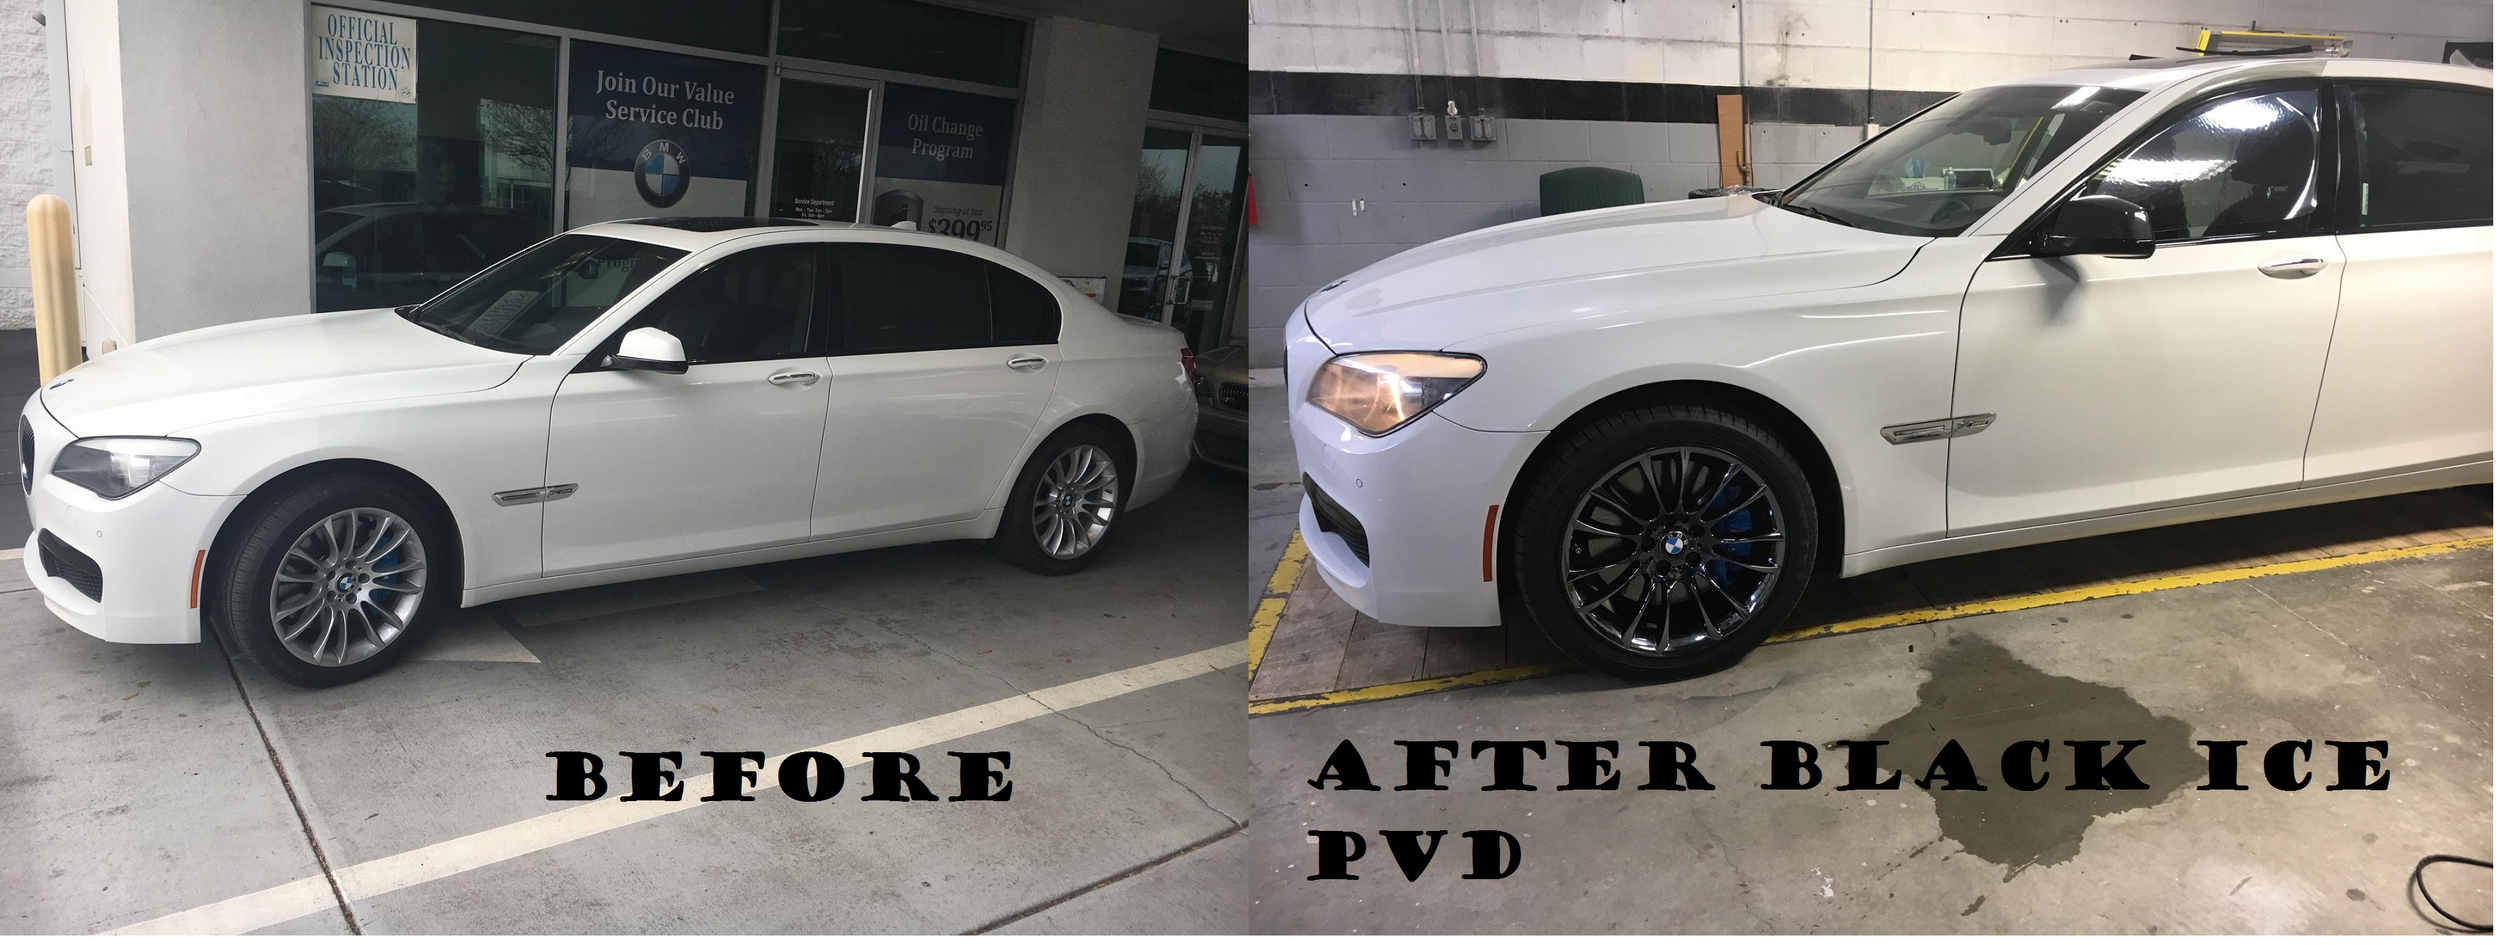 bmw-550i-in-black-ice-pvd-wheels_33051570906_o.png